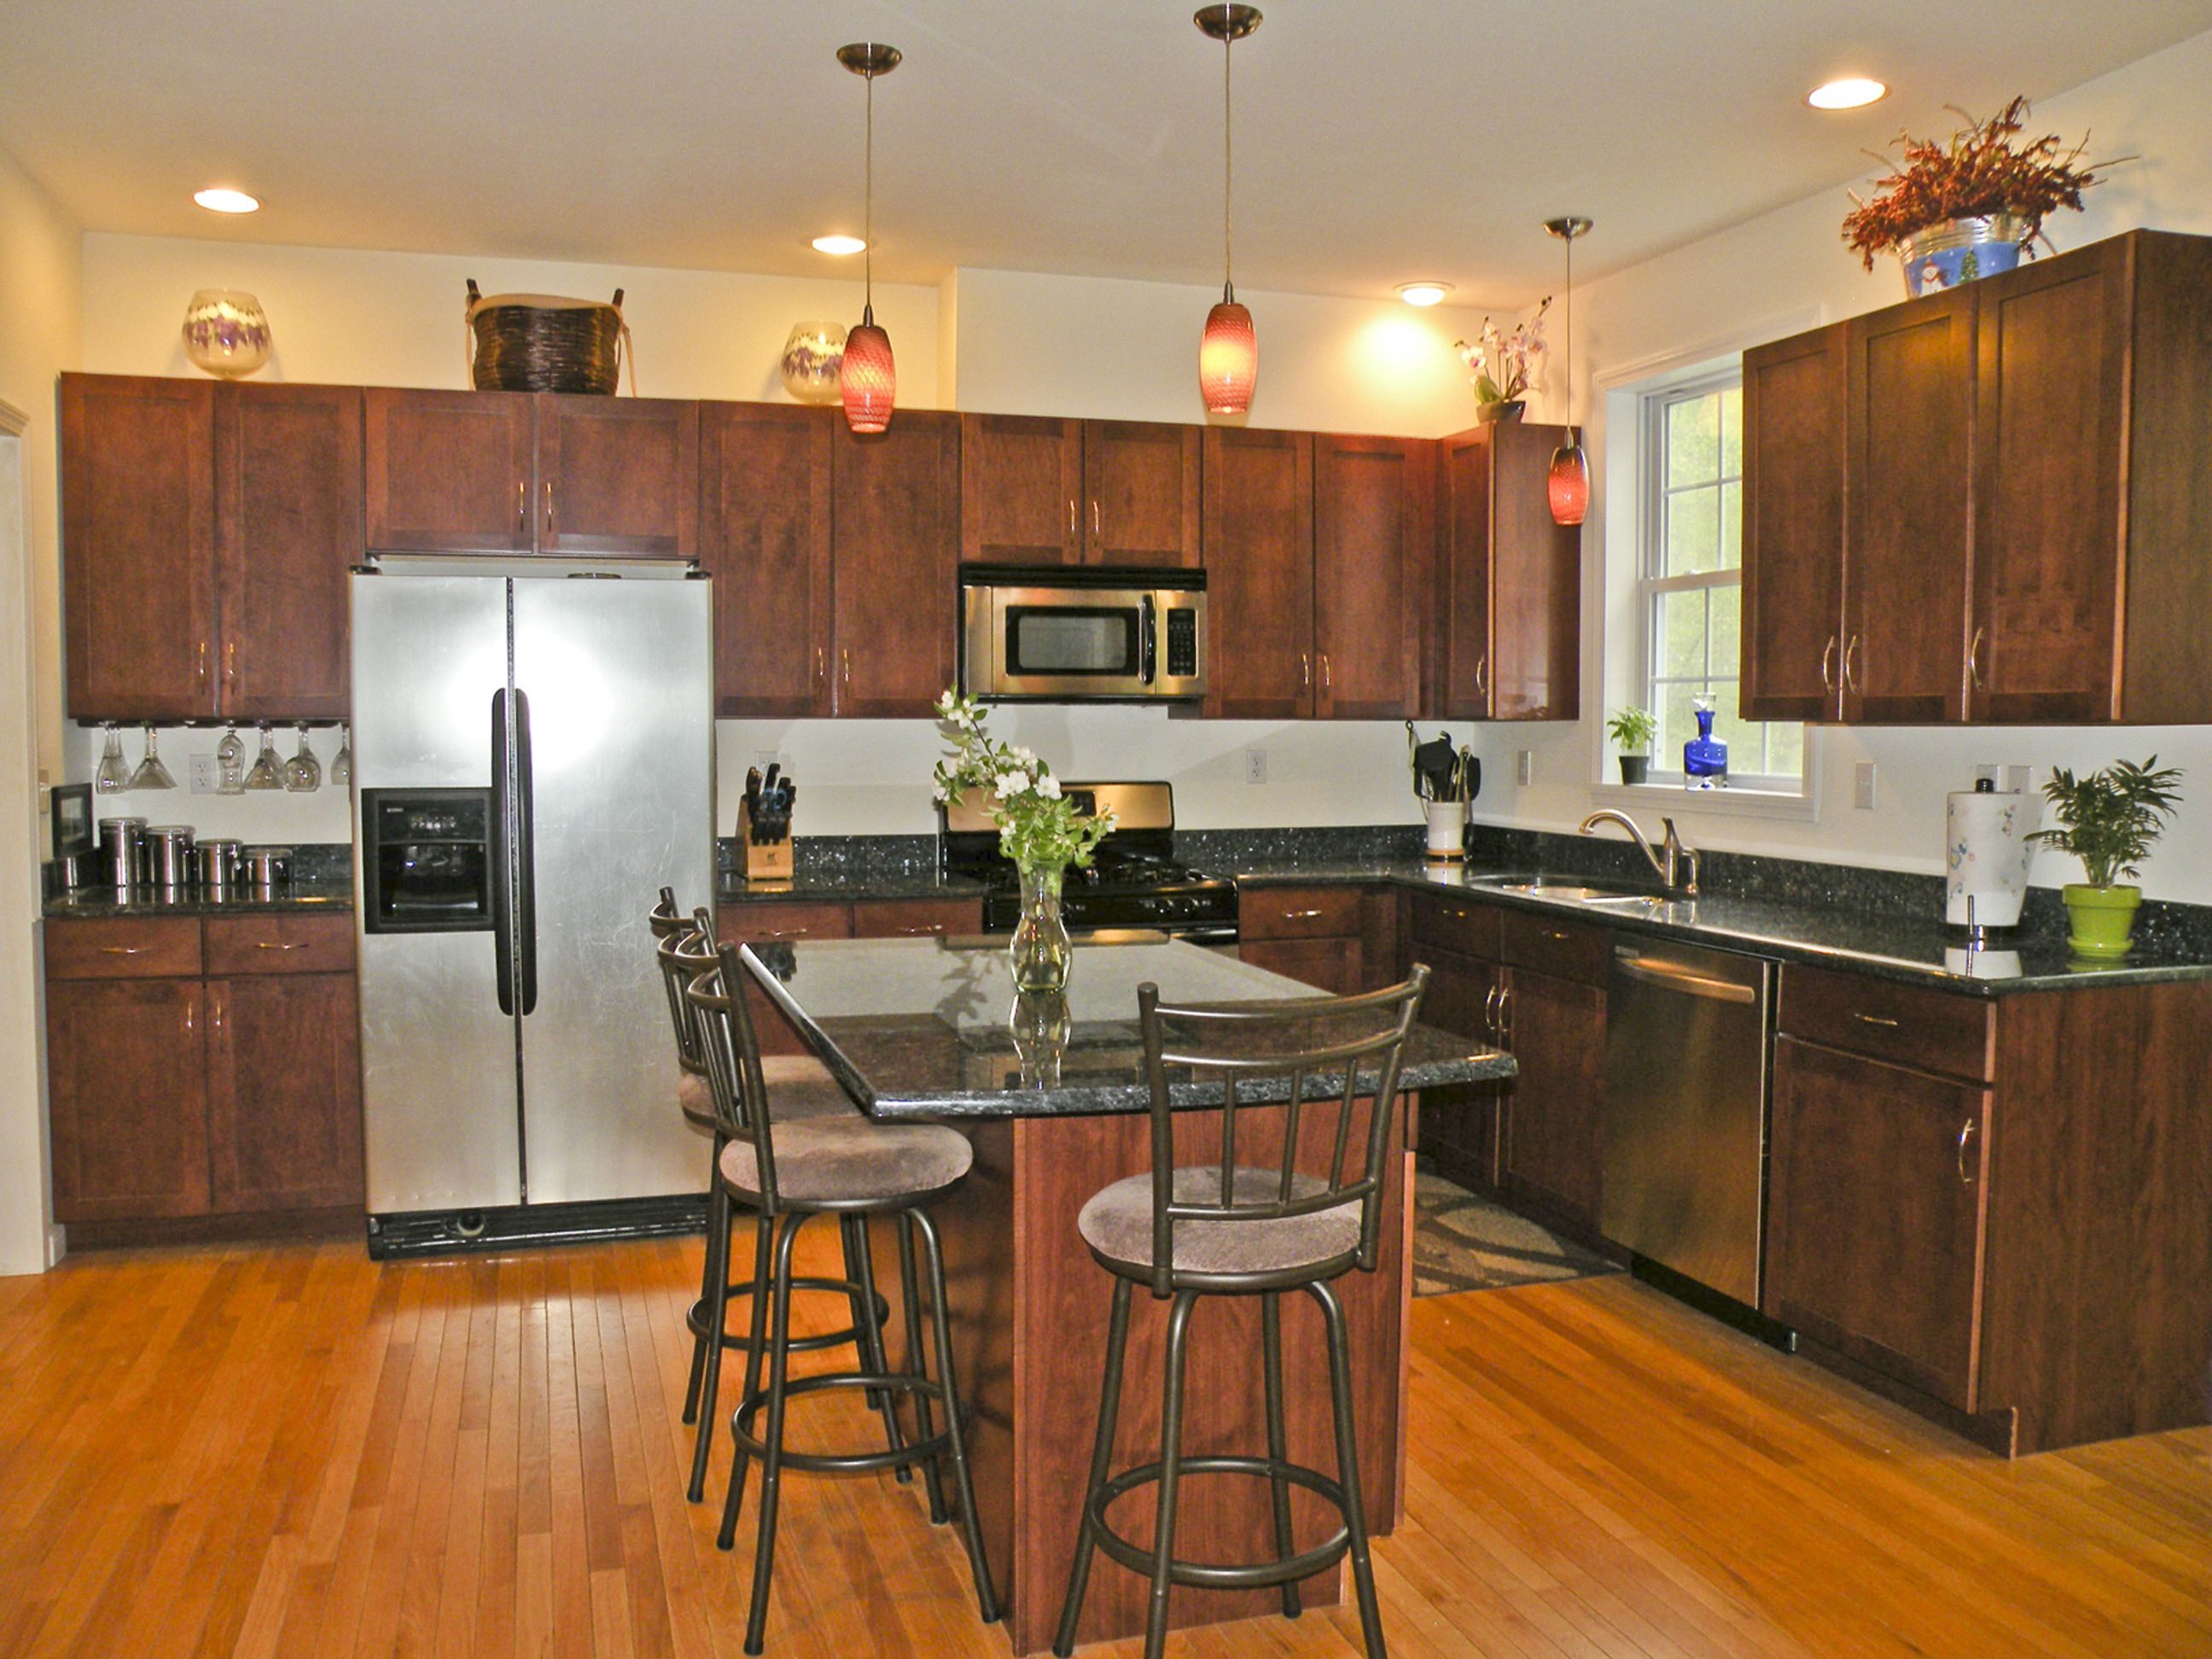 Chef S Kitchen With Custom Cabinets A Little More Like Home Now To Me That S A Kitchen Kitchen Design Updated Kitchen Custom Cabinets